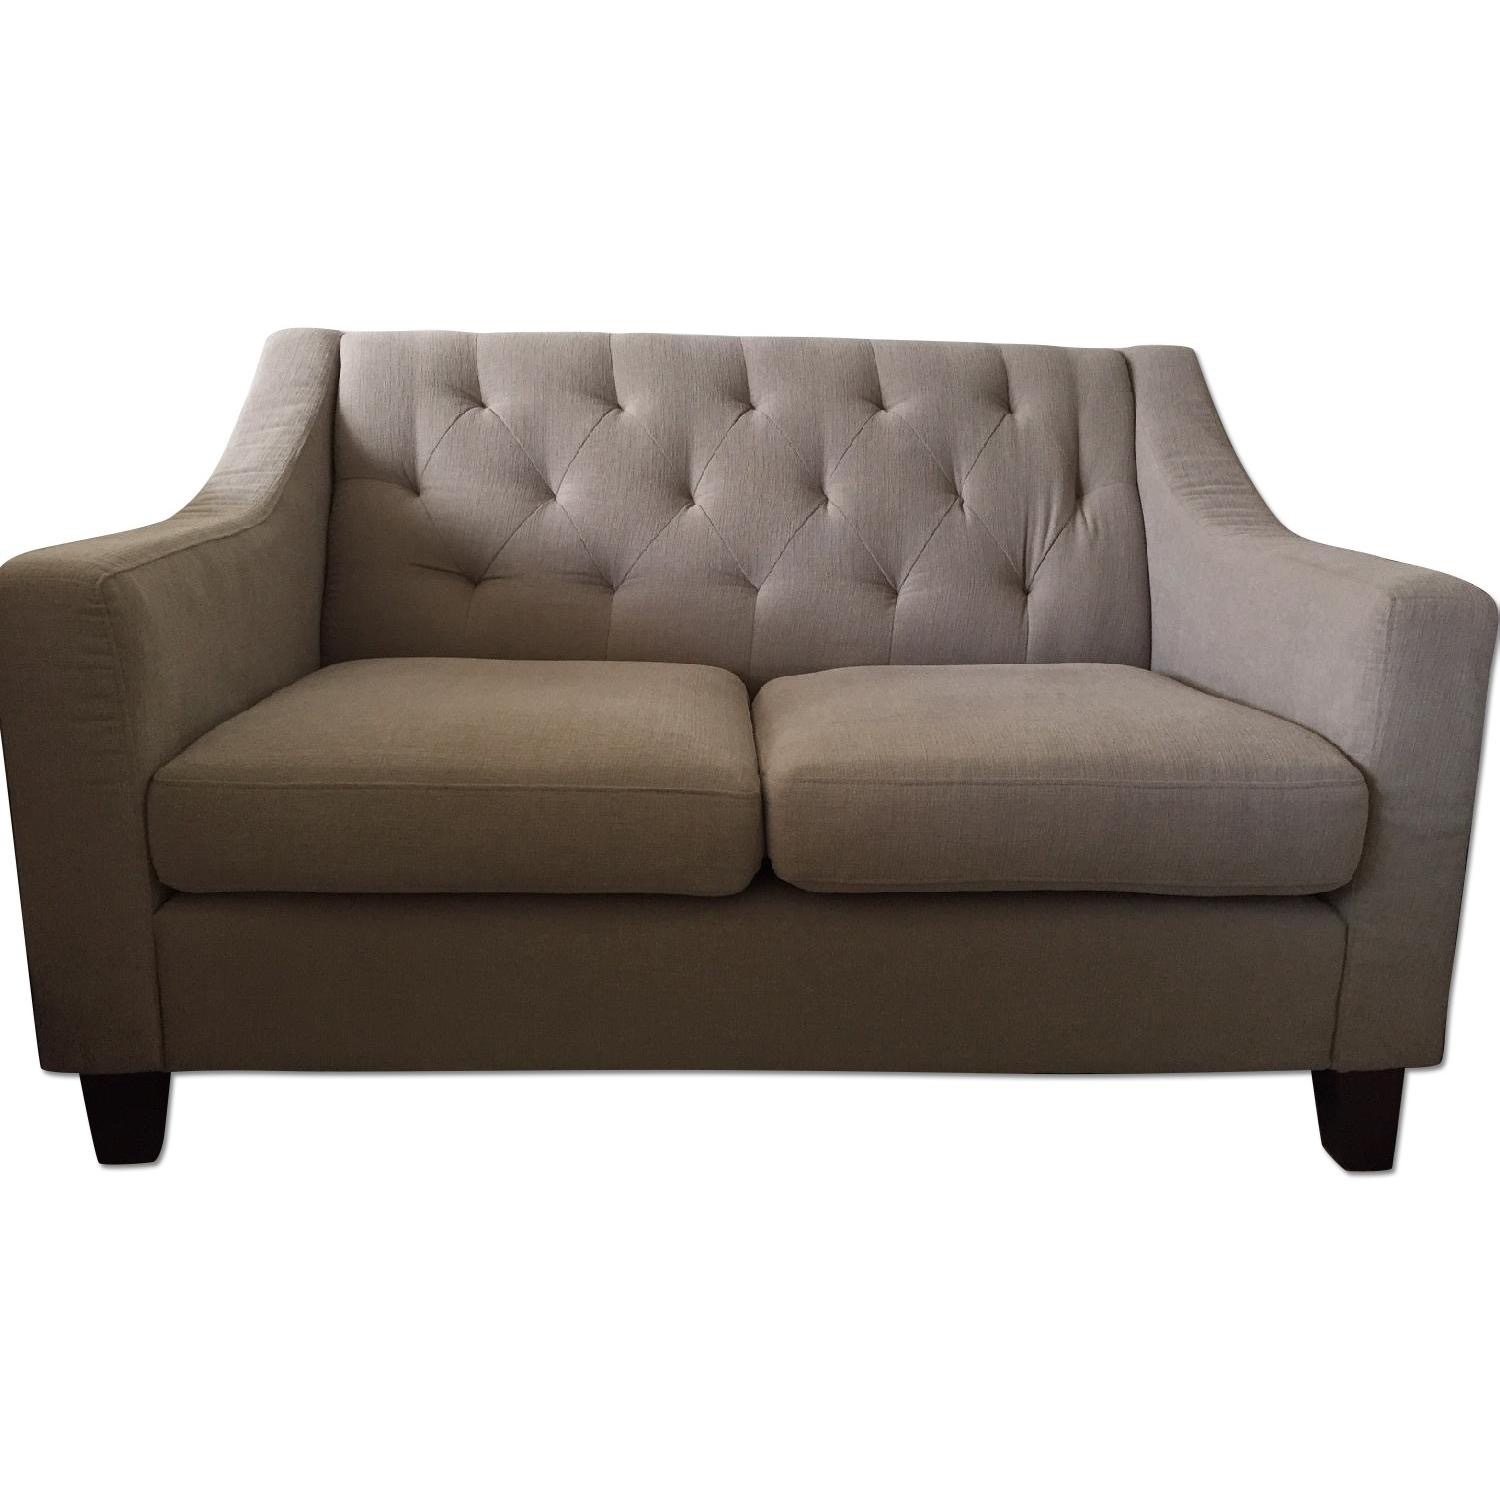 Target Tufted Loveseat in TAUPE - image-3